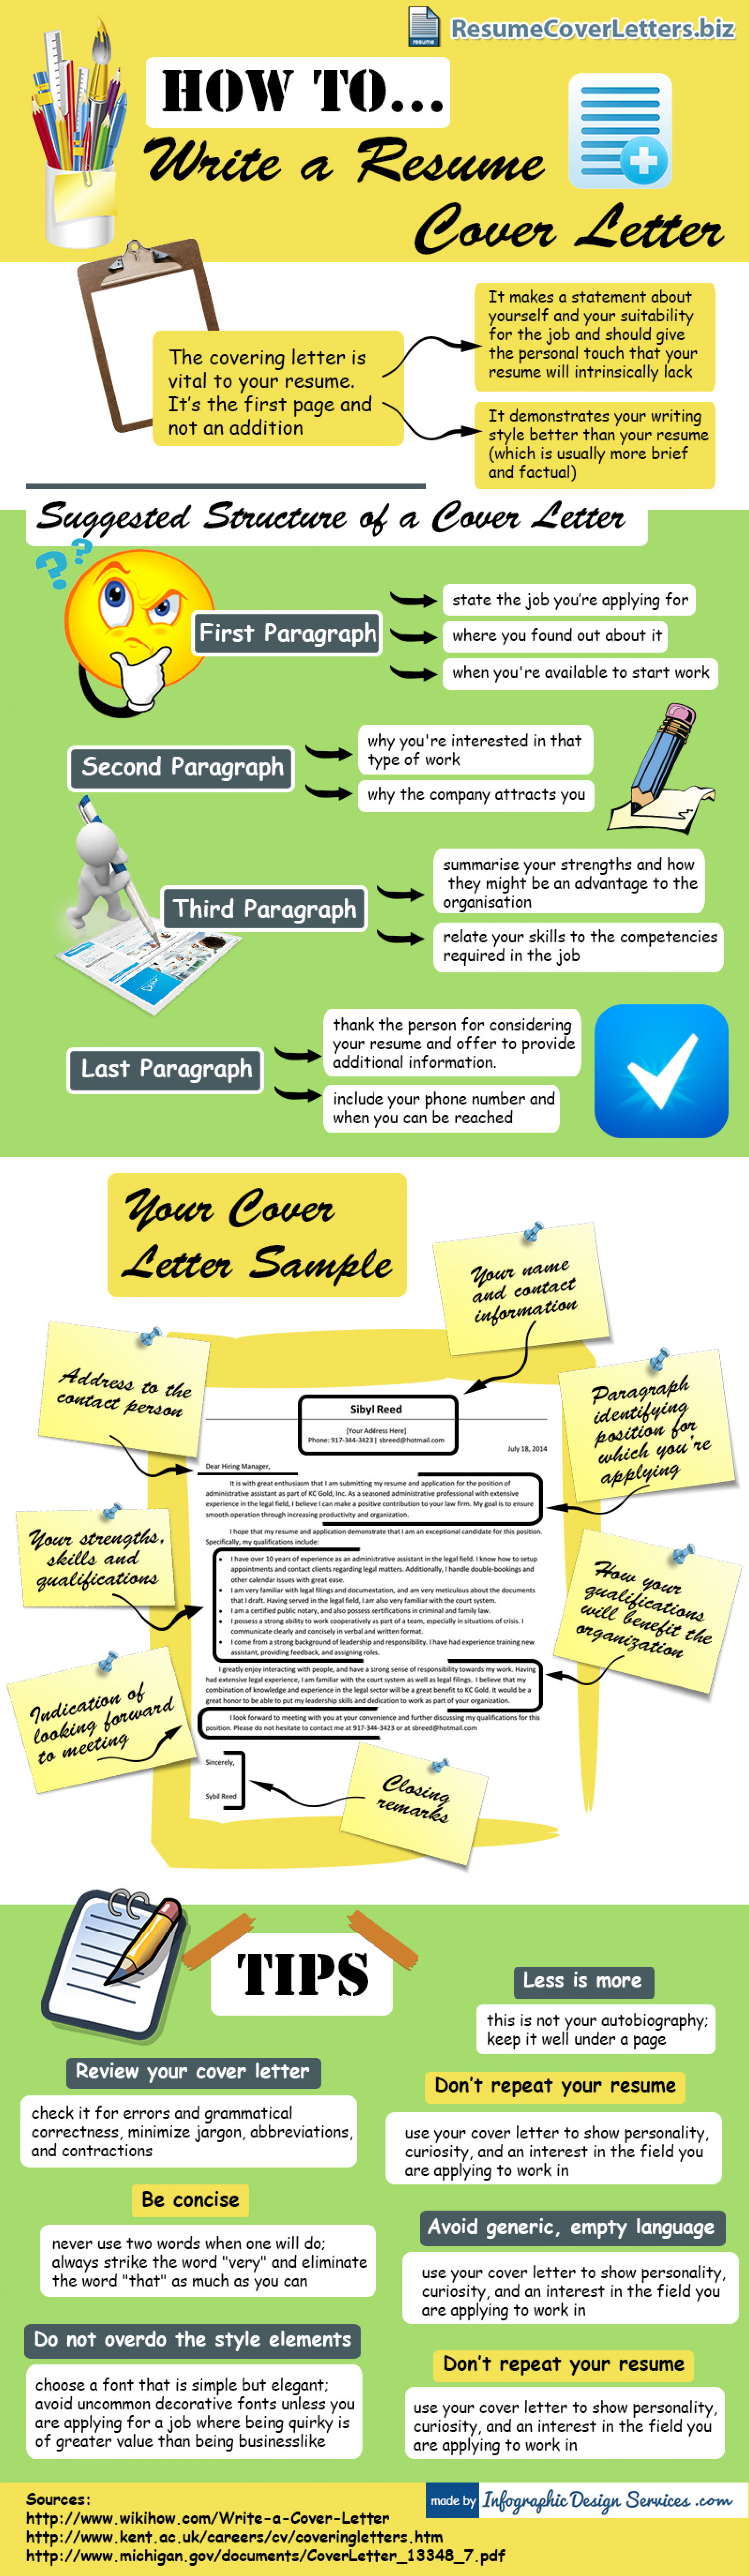 Resume Cover Letter Writing Tips Infographic  Tips For Resume